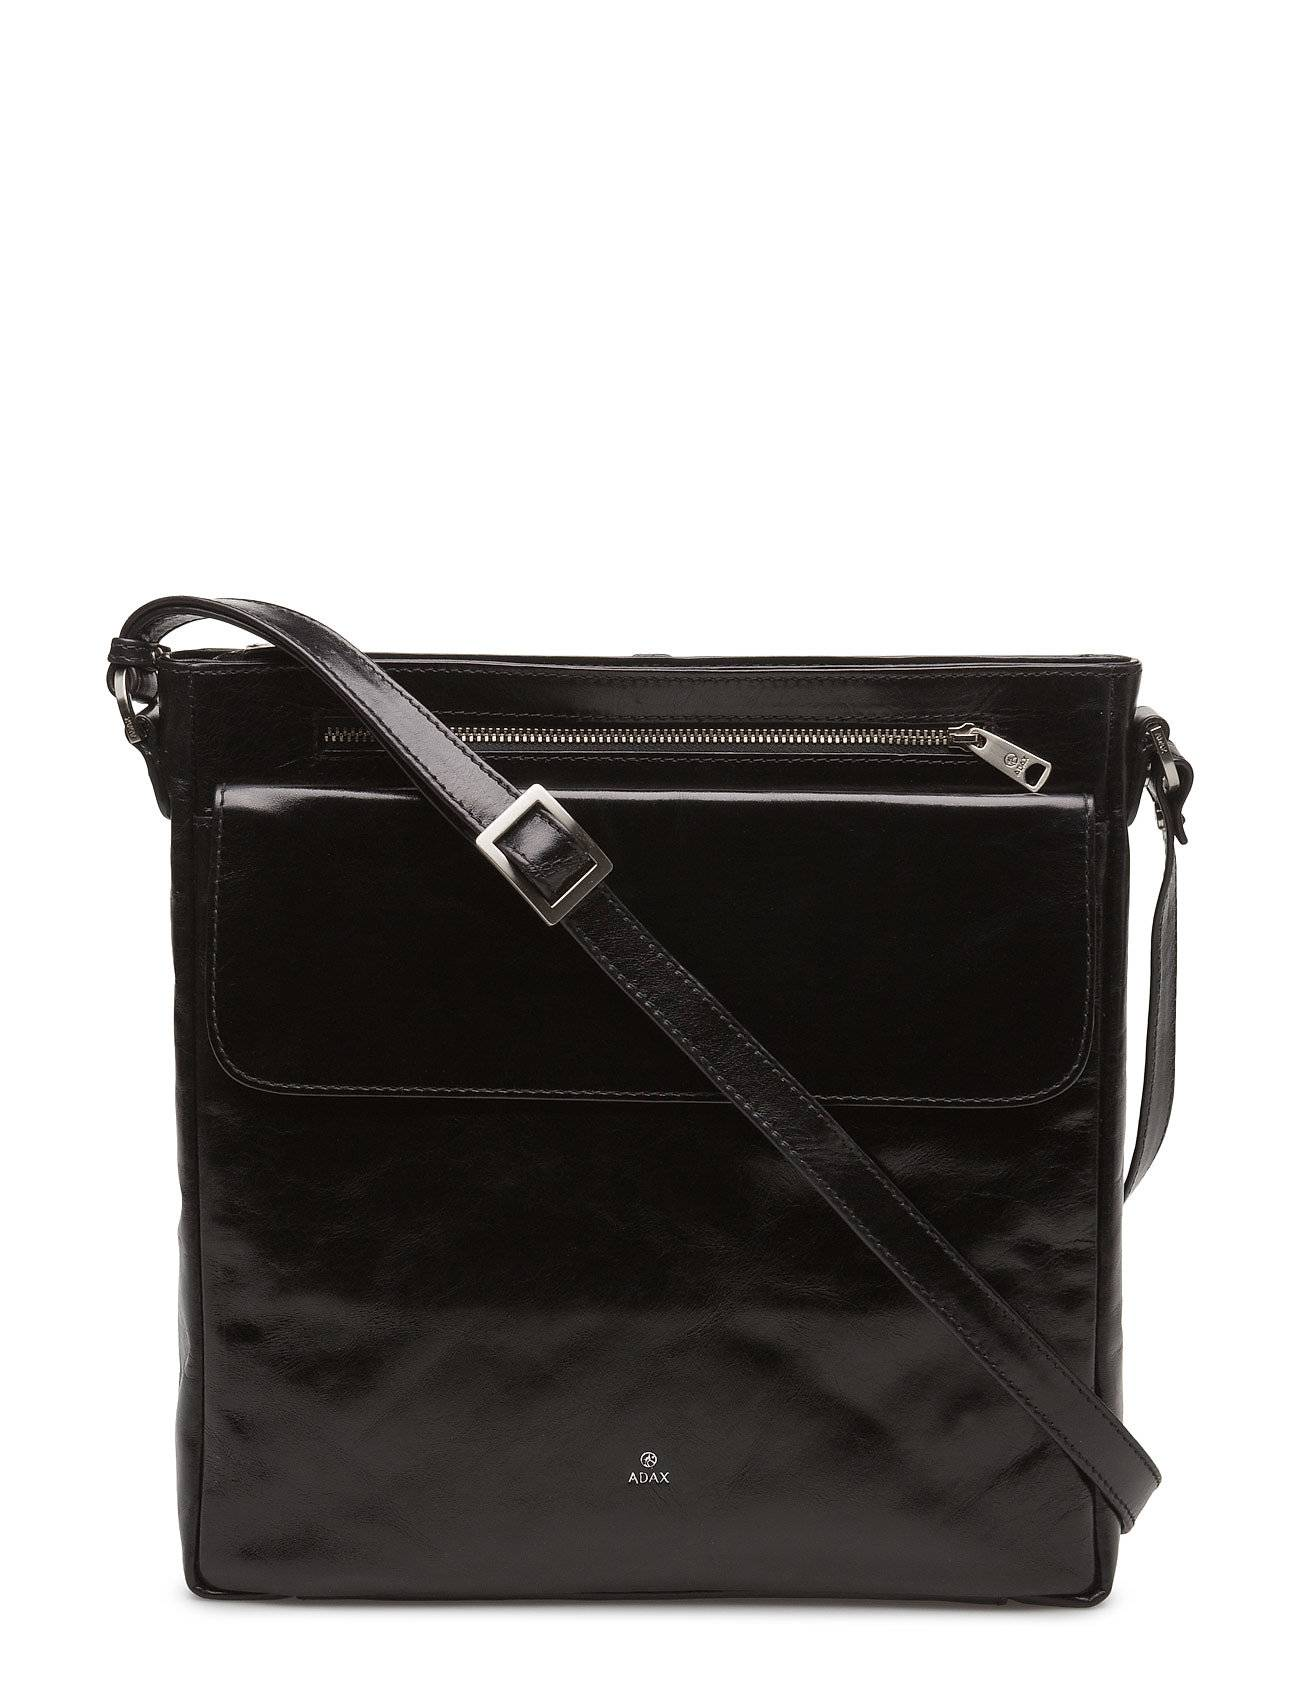 Adax Salerno Crossbody Zelina